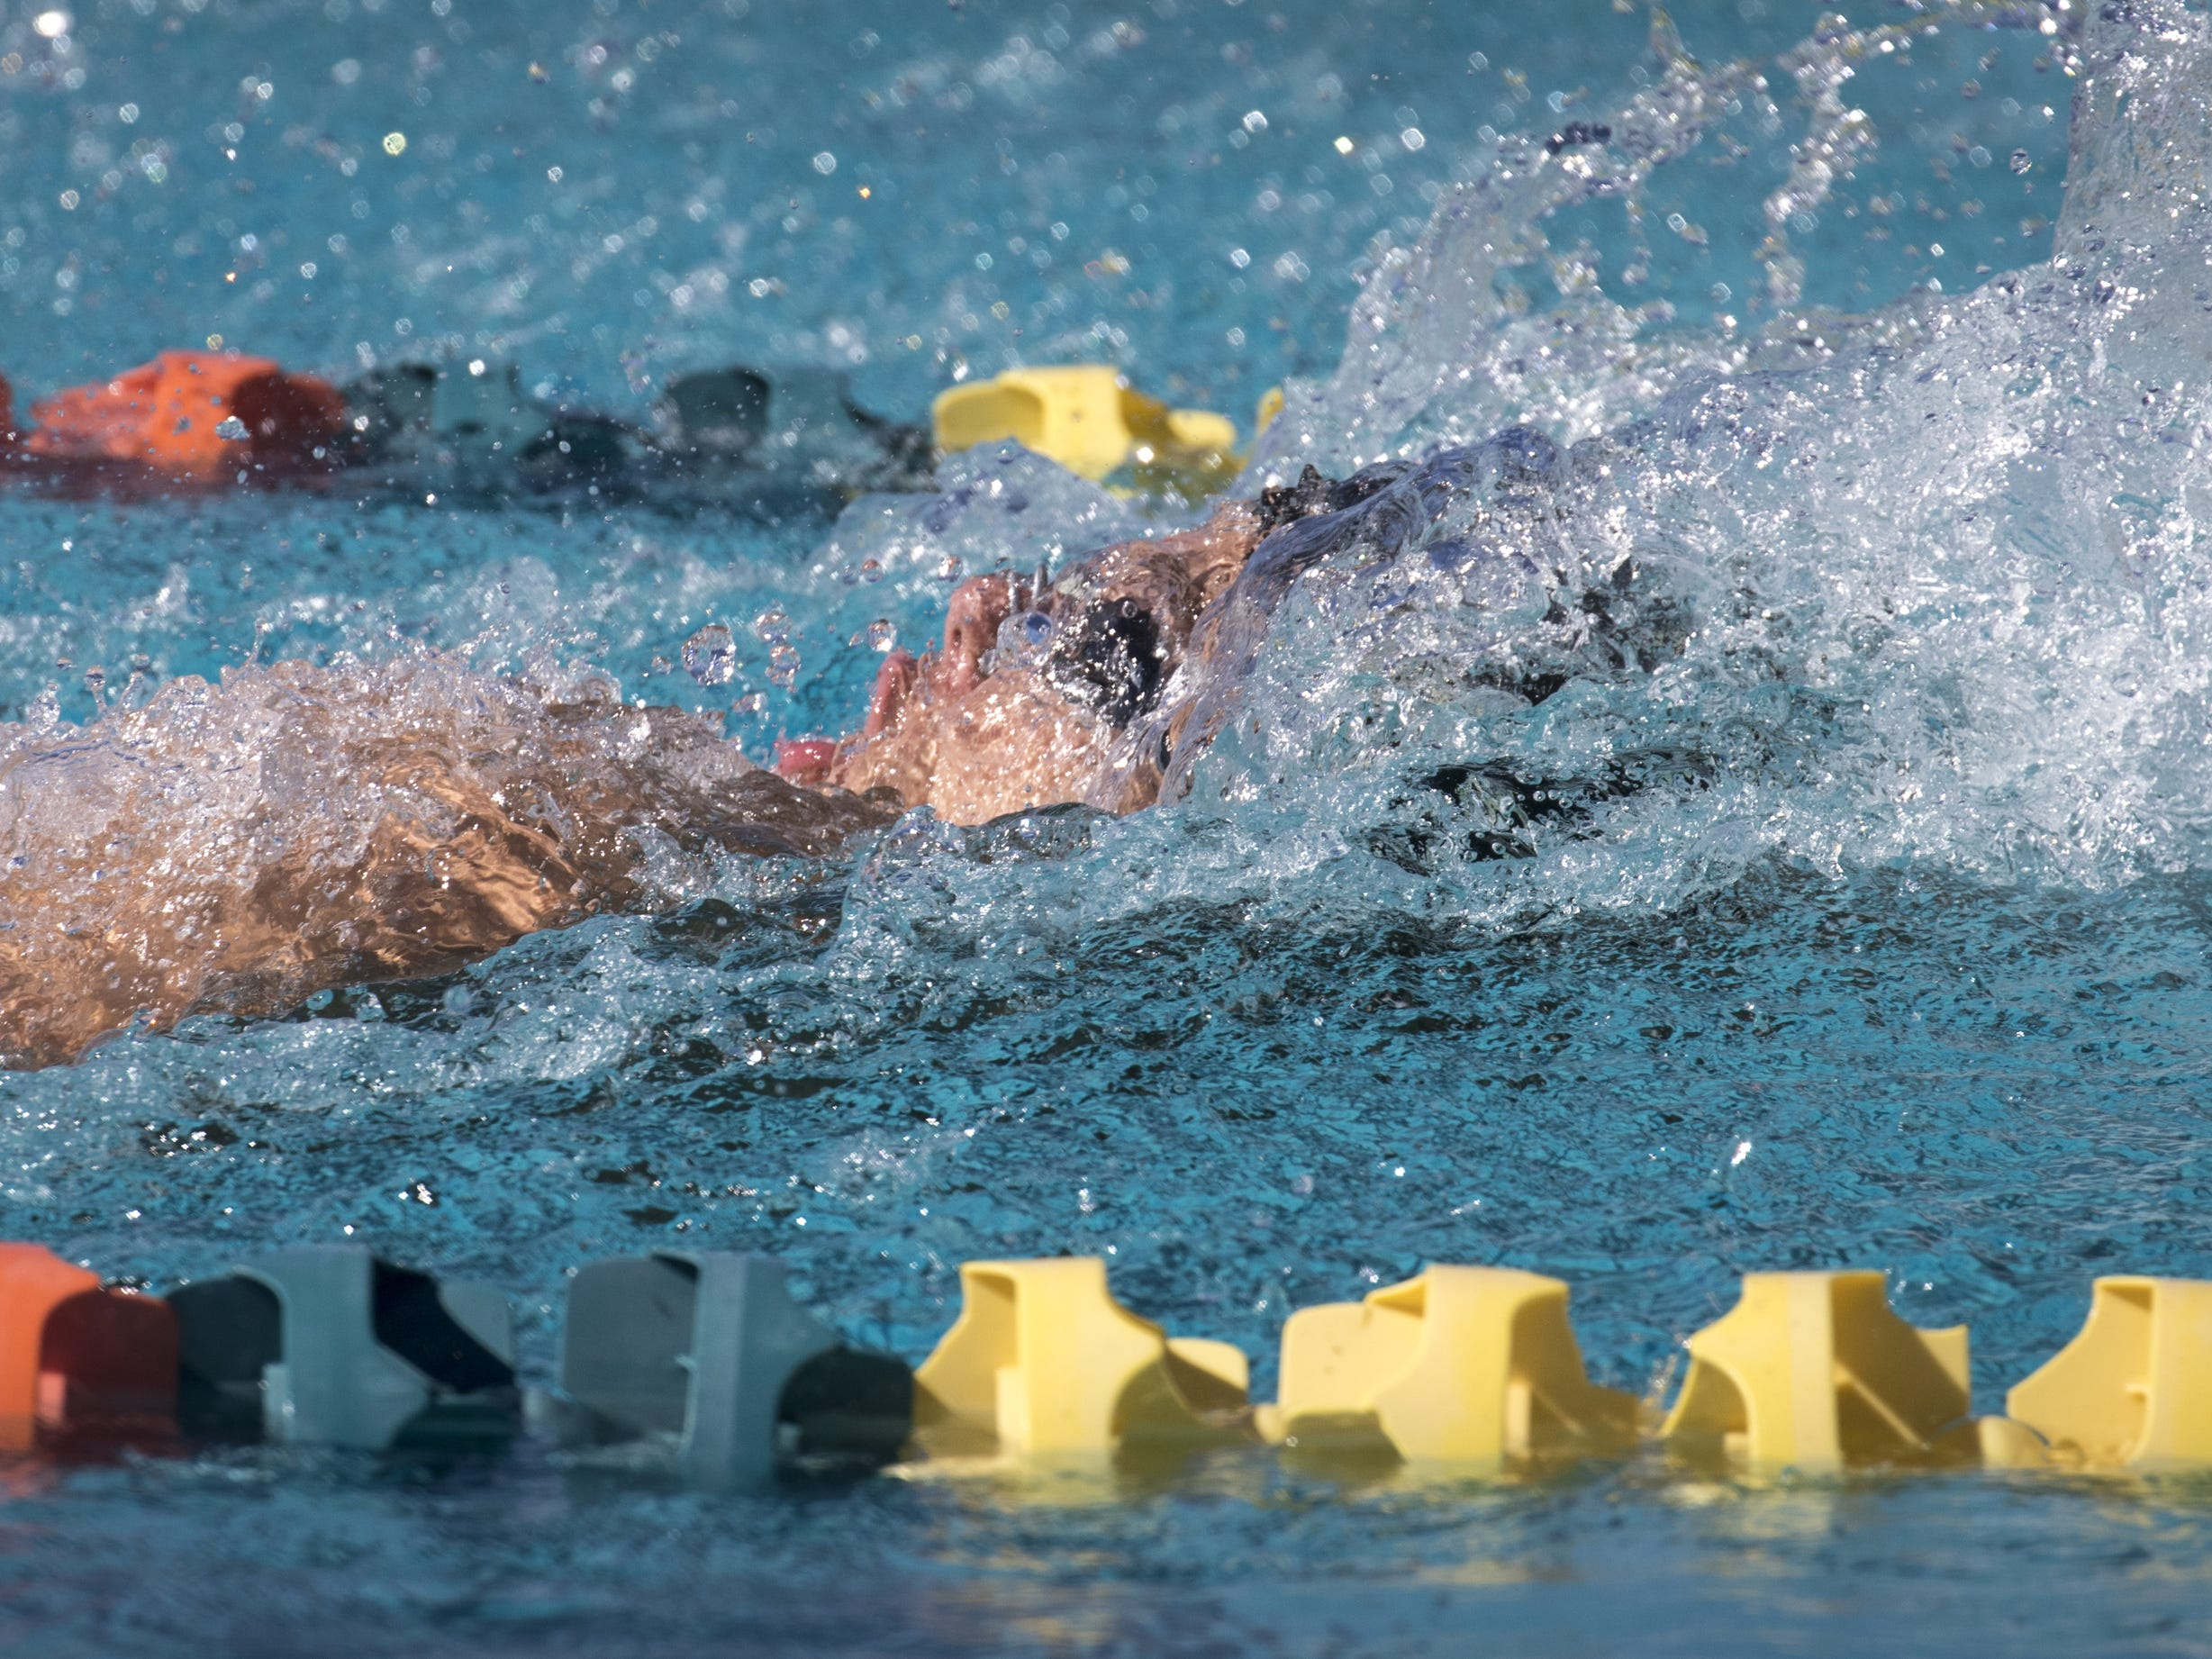 Jadan Nabor (Verrado) swims the 100 Backstroke, November 3, 2018, during the AIA Division II state swimming finals at the Skyline Aquatic Center, Mesa. Nabor won the event.